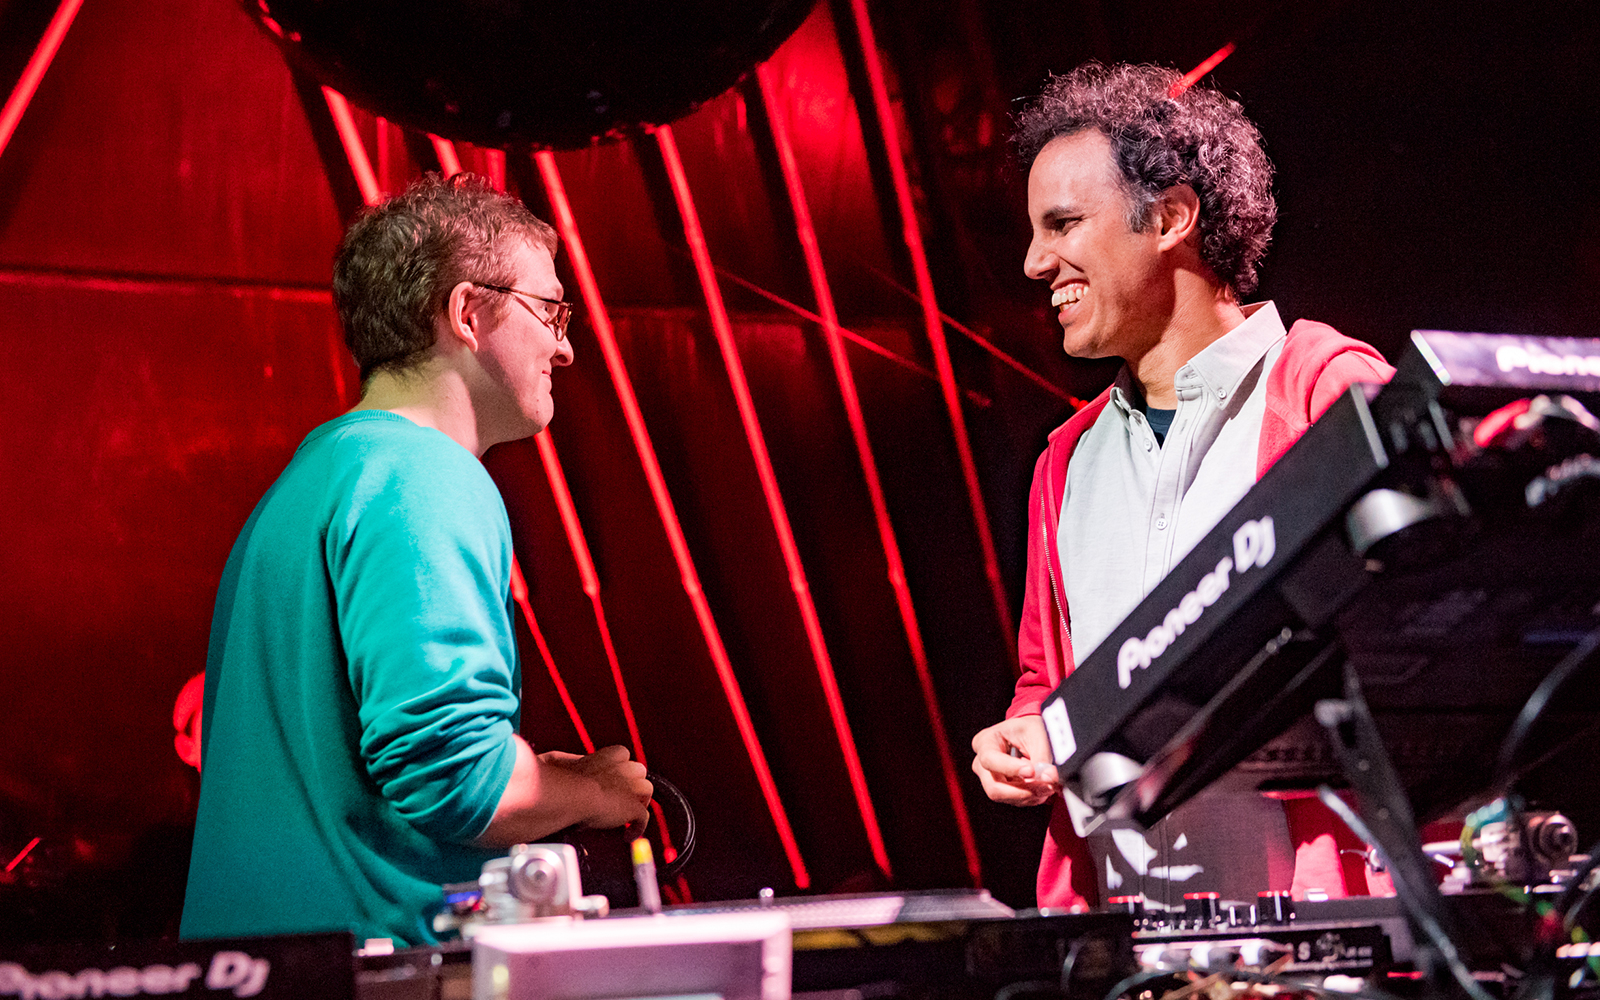 Four Tet & Floating Points